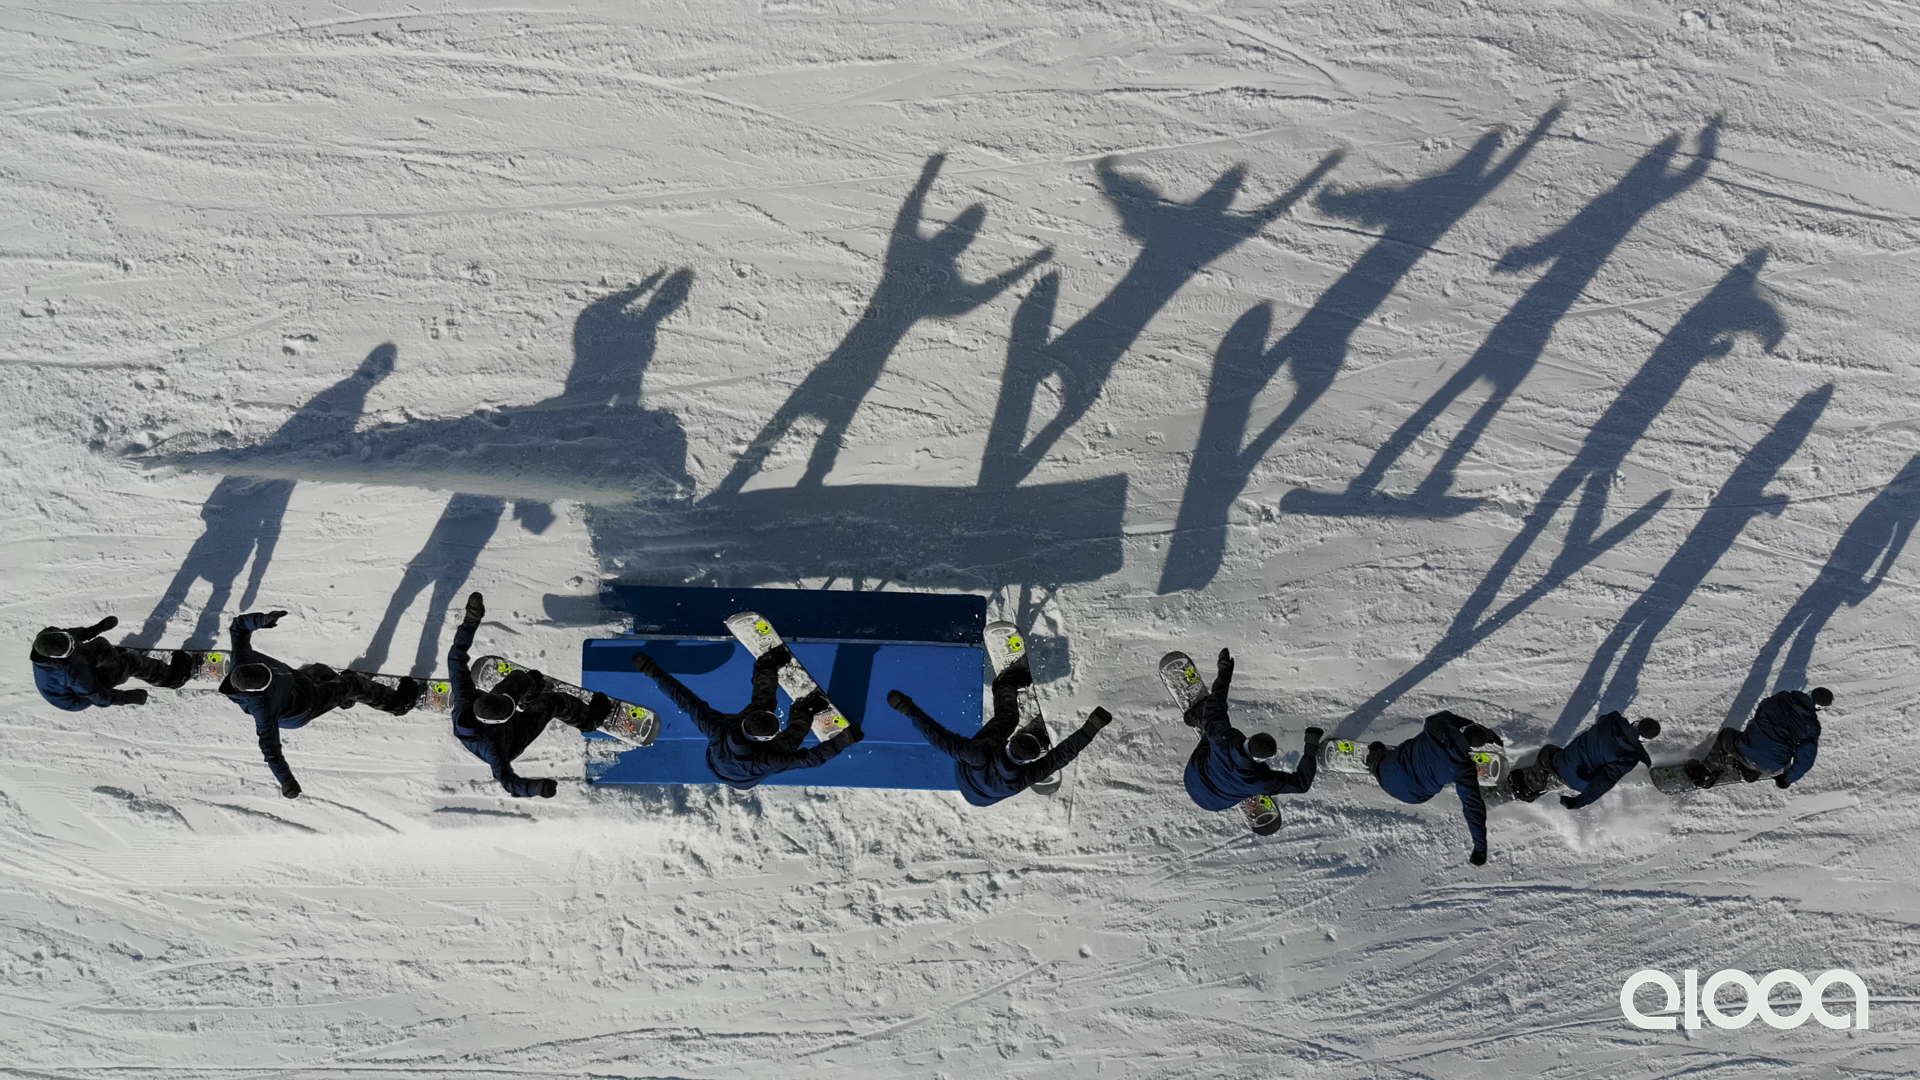 The first winter camp of the season went down in Kaunertal last week